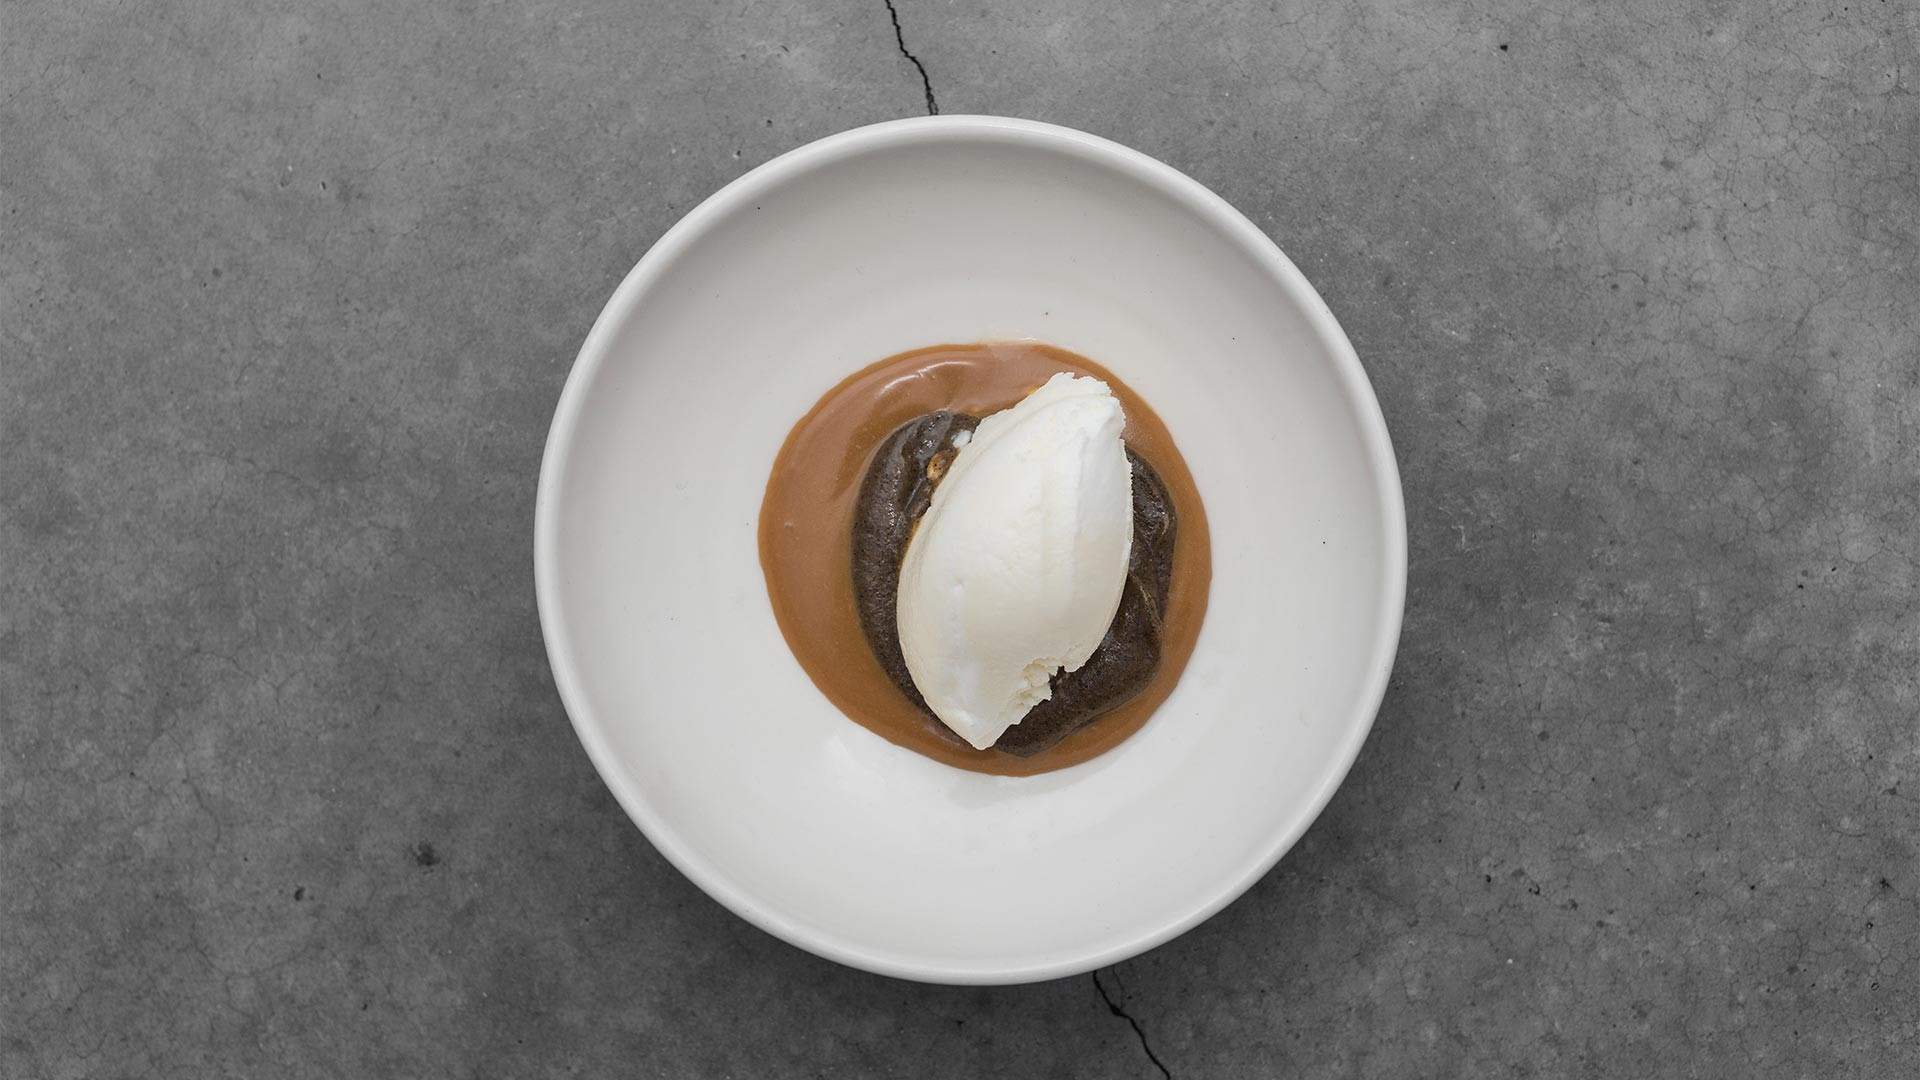 A whey dish at Lyle's